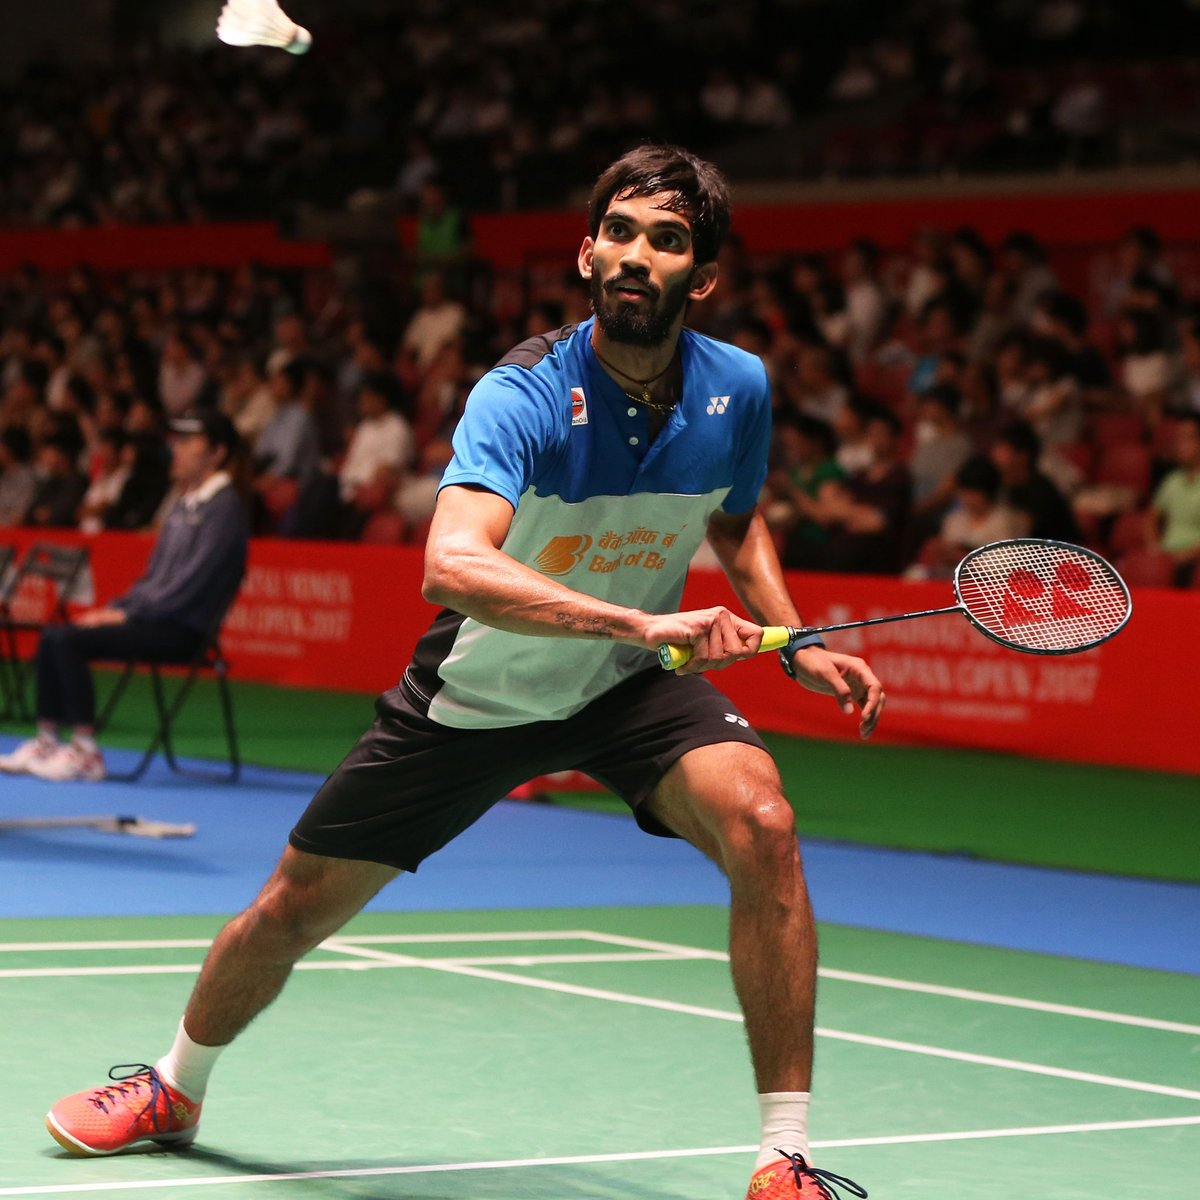 Good straight sets win and I feel much better playing today. #japanopen #superseries #2ndround #teamindia #believe #achieve <br>http://pic.twitter.com/YXSi2oAxLd